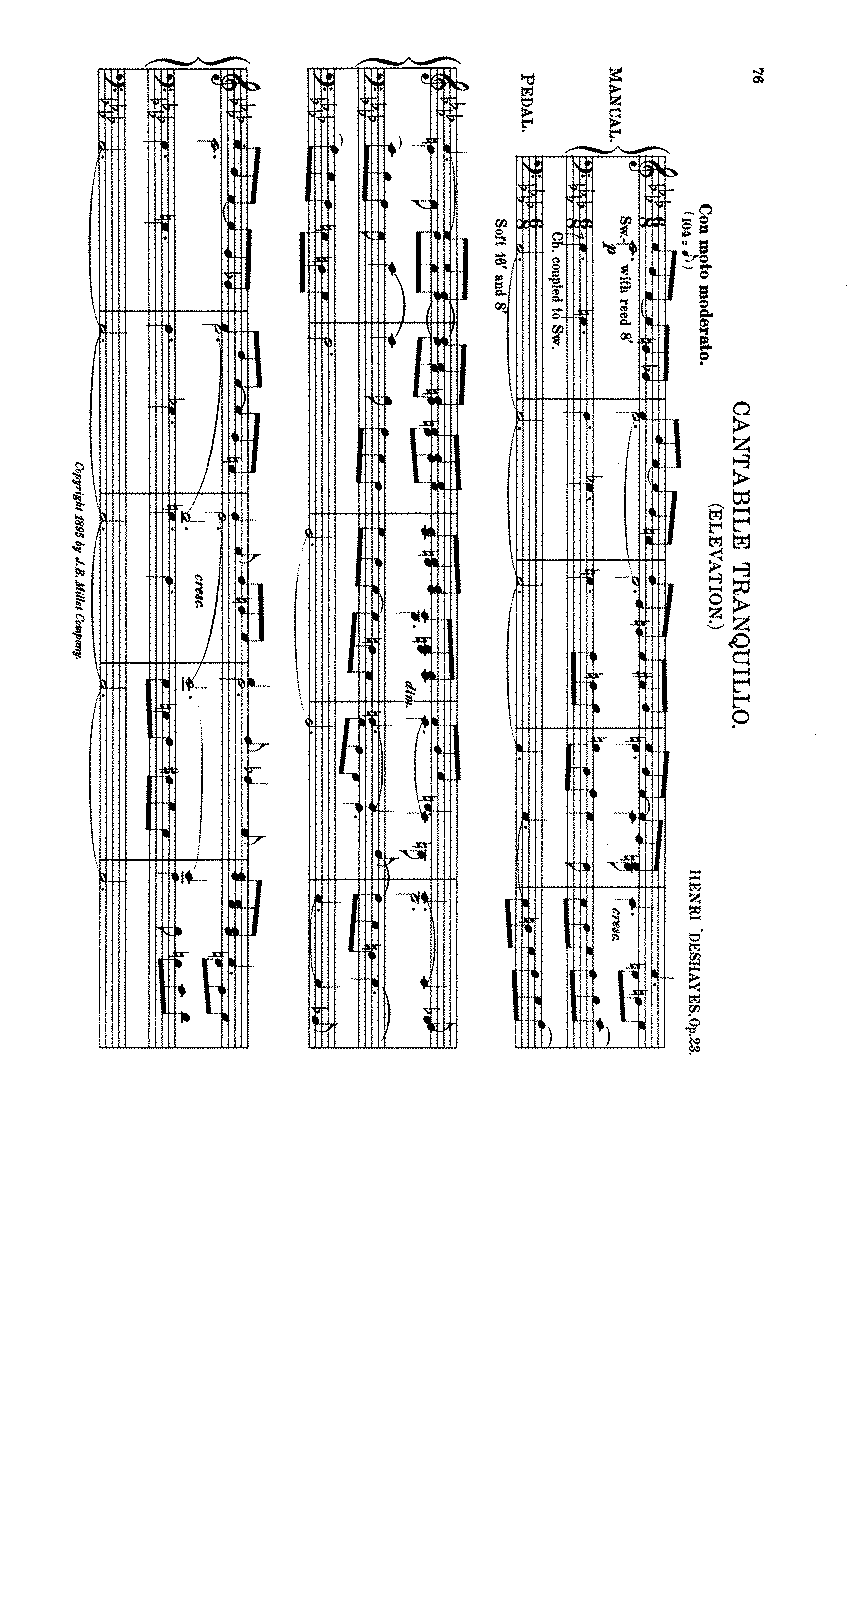 PMLP191744-HDeshayes Cantabile Tranquillo Op.23.pdf